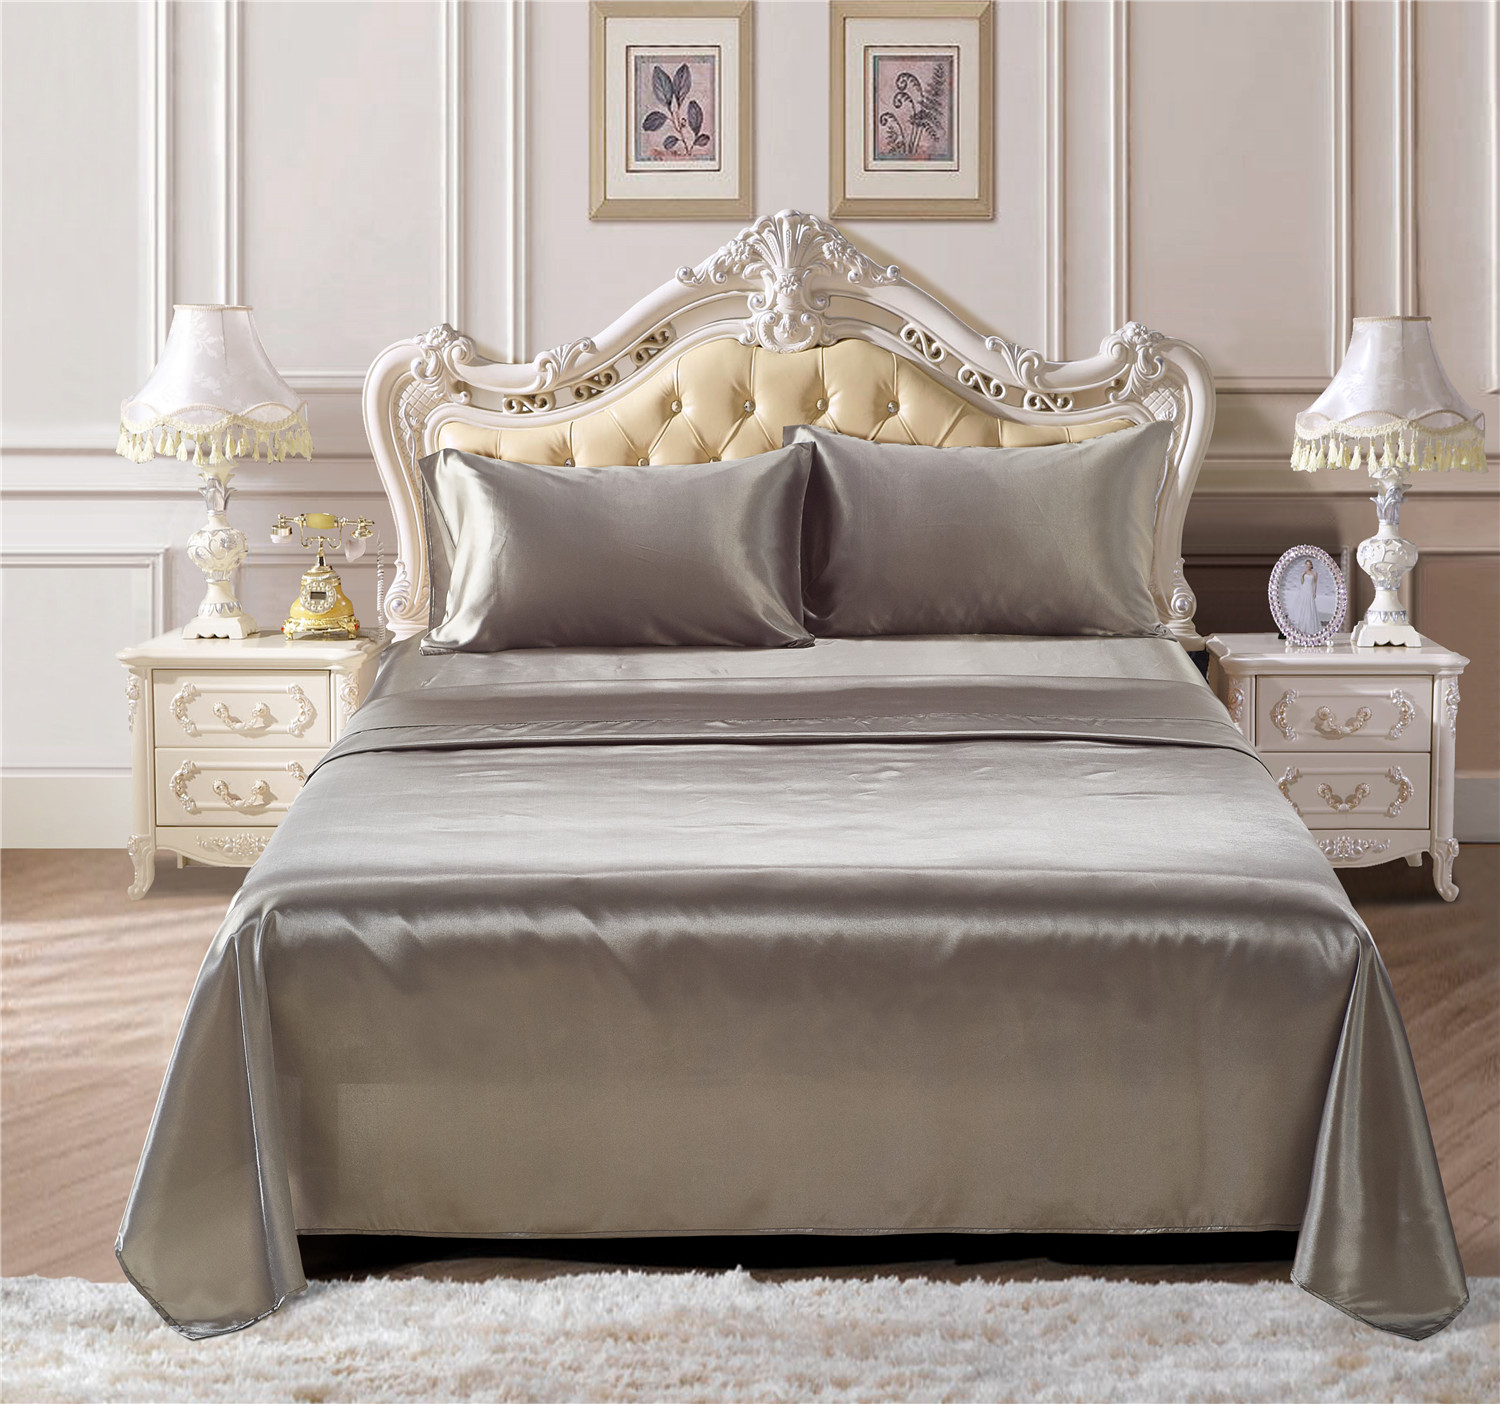 Soft silk fitted sheets sets satin US Twin/Queen /King full sizes solid color Bedding 4pcs/set bedspread bed linens set|Sheet| |  - title=